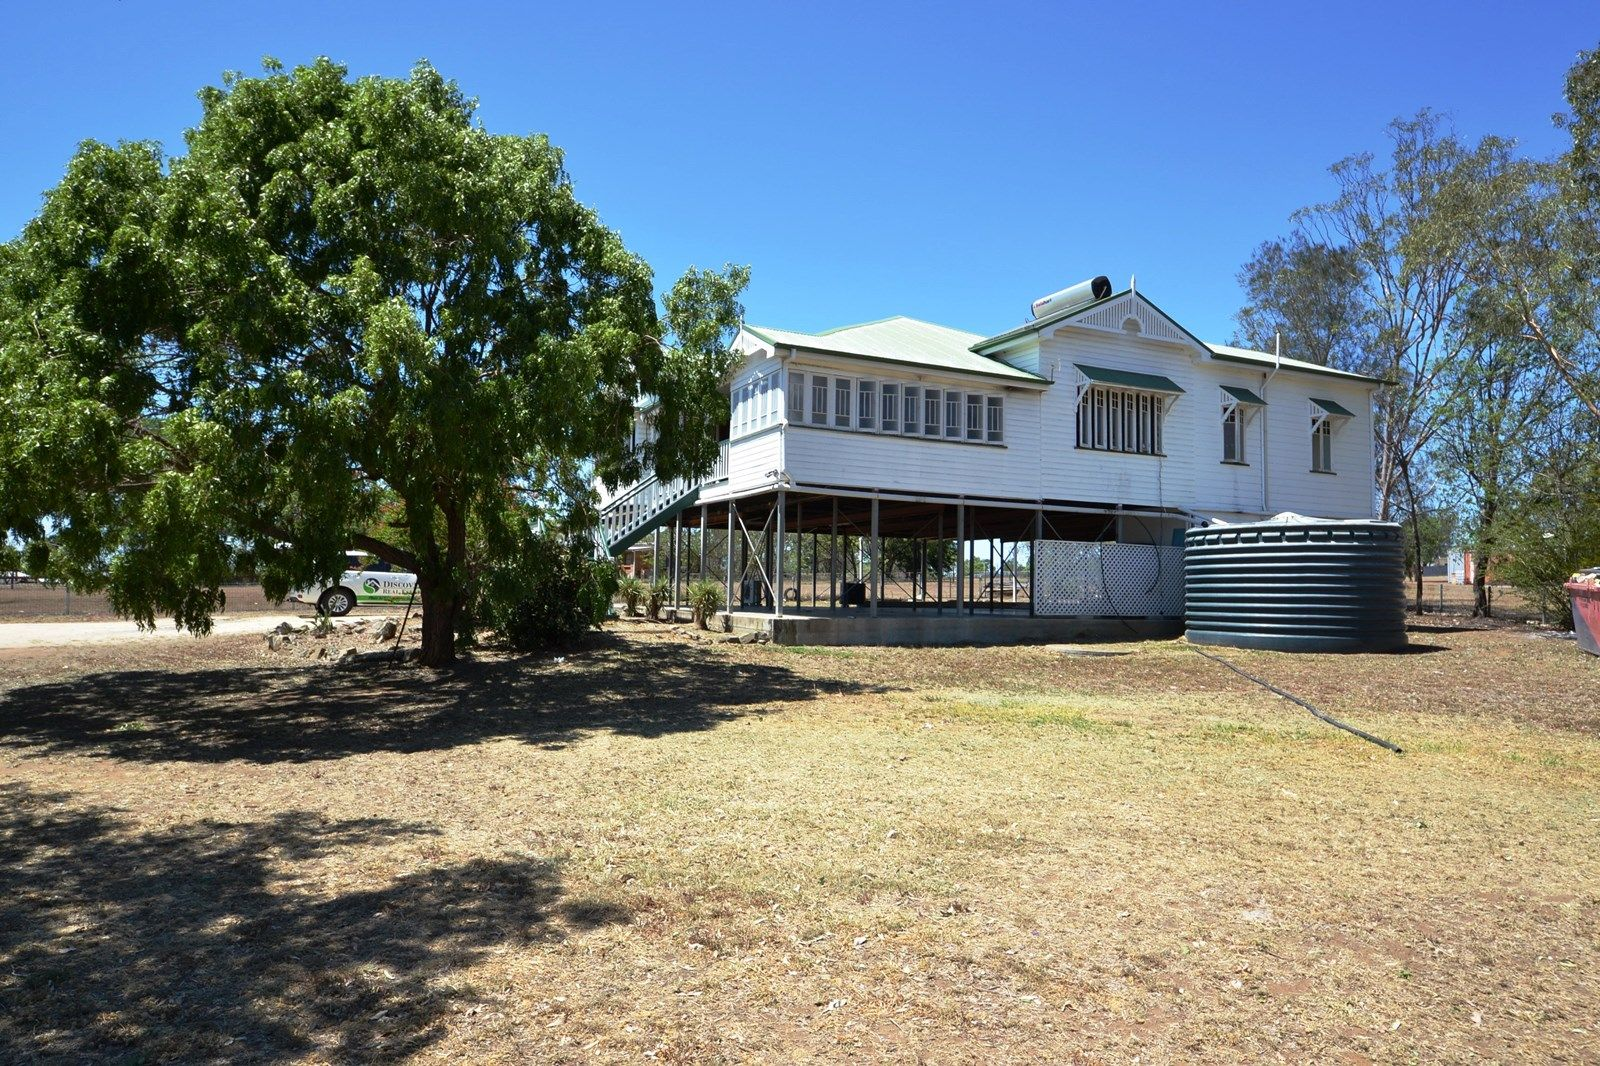 855 Gavial-gracemere Rd, Gracemere QLD 4702, Image 1